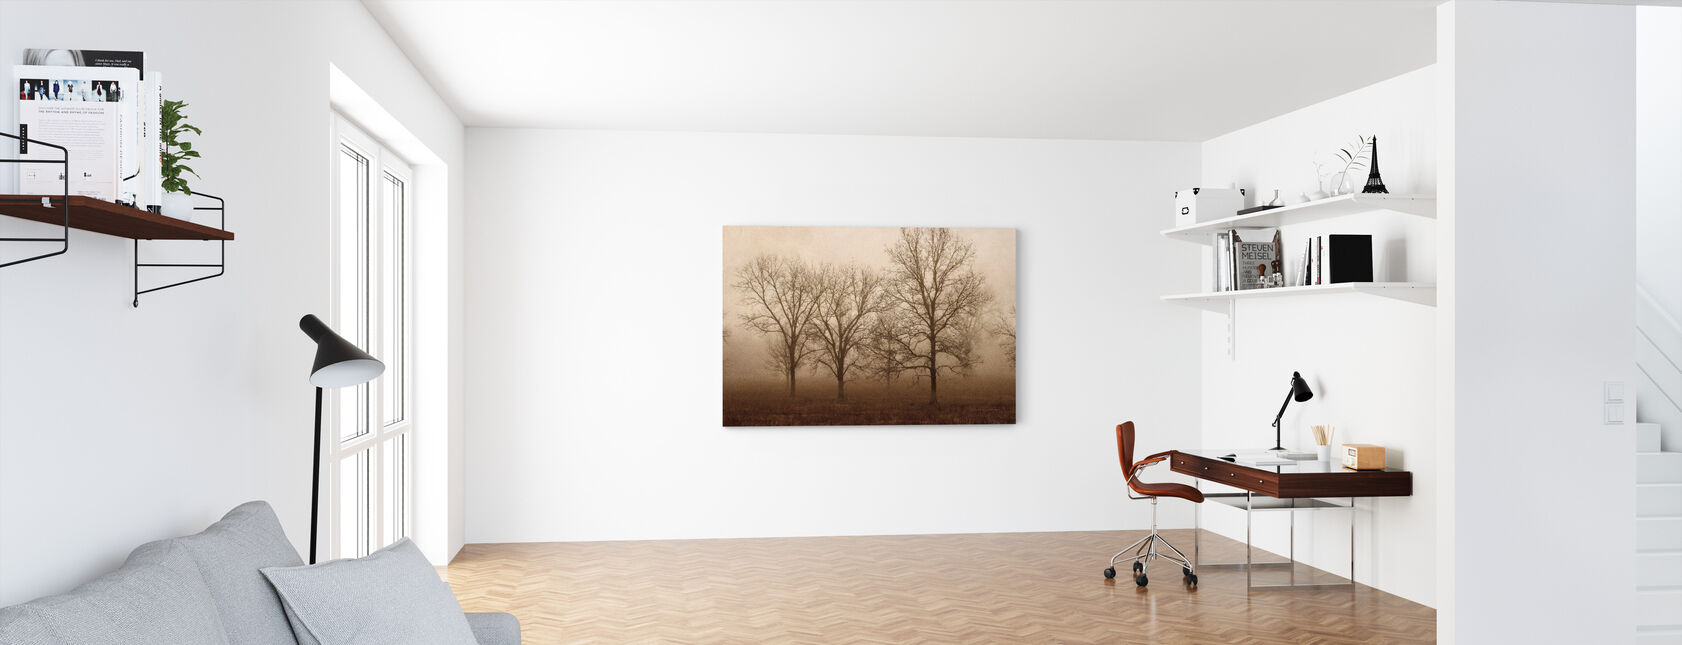 Morning Calm II - Canvas print - Office